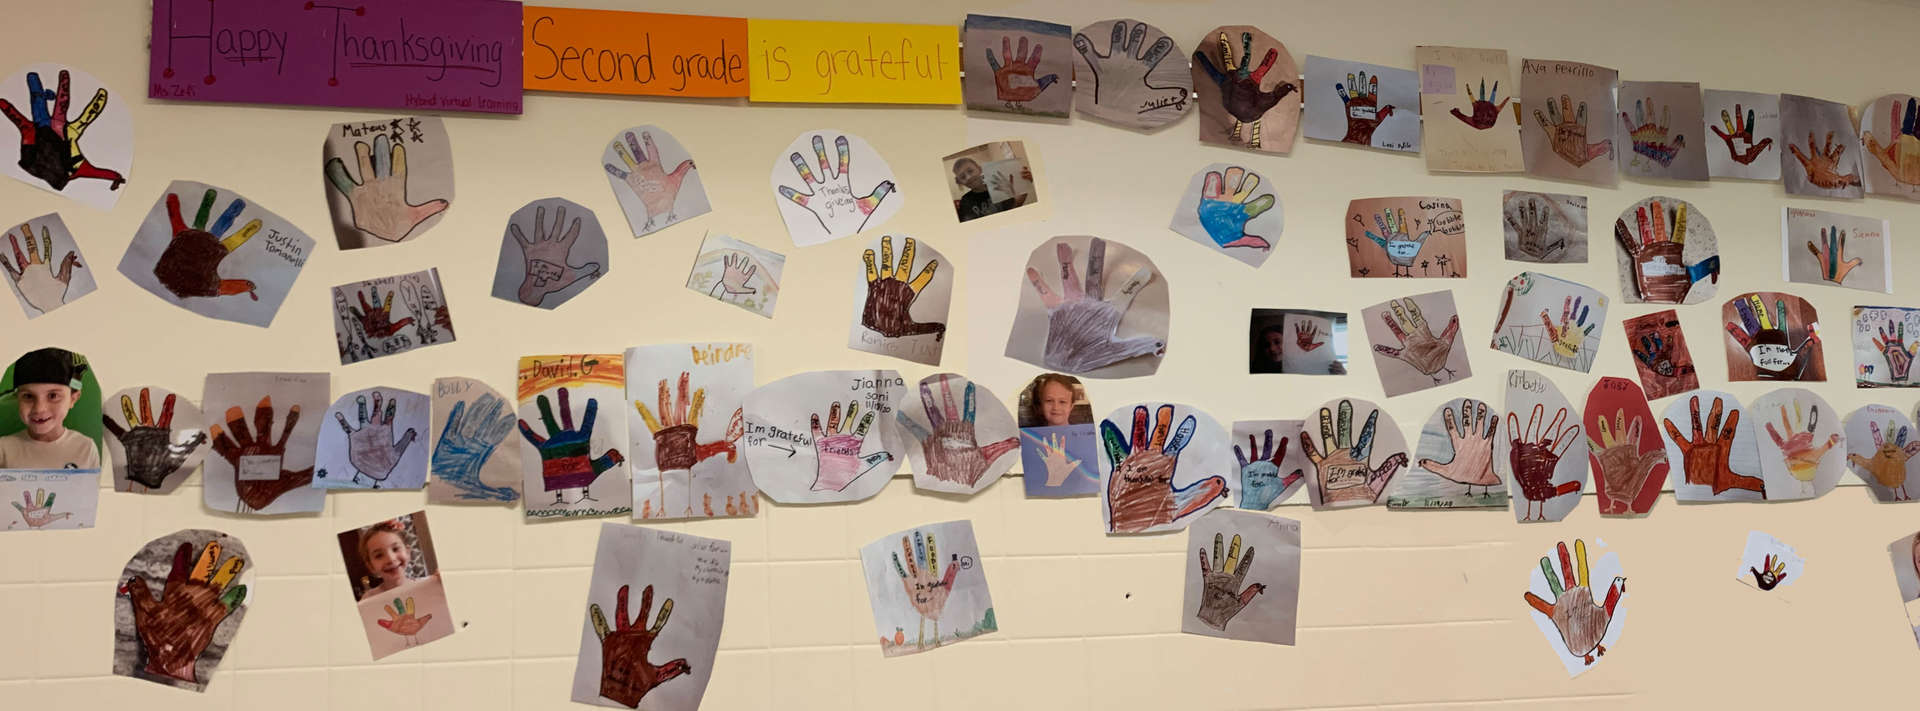 2nd grade art work covers the walls of the hallway